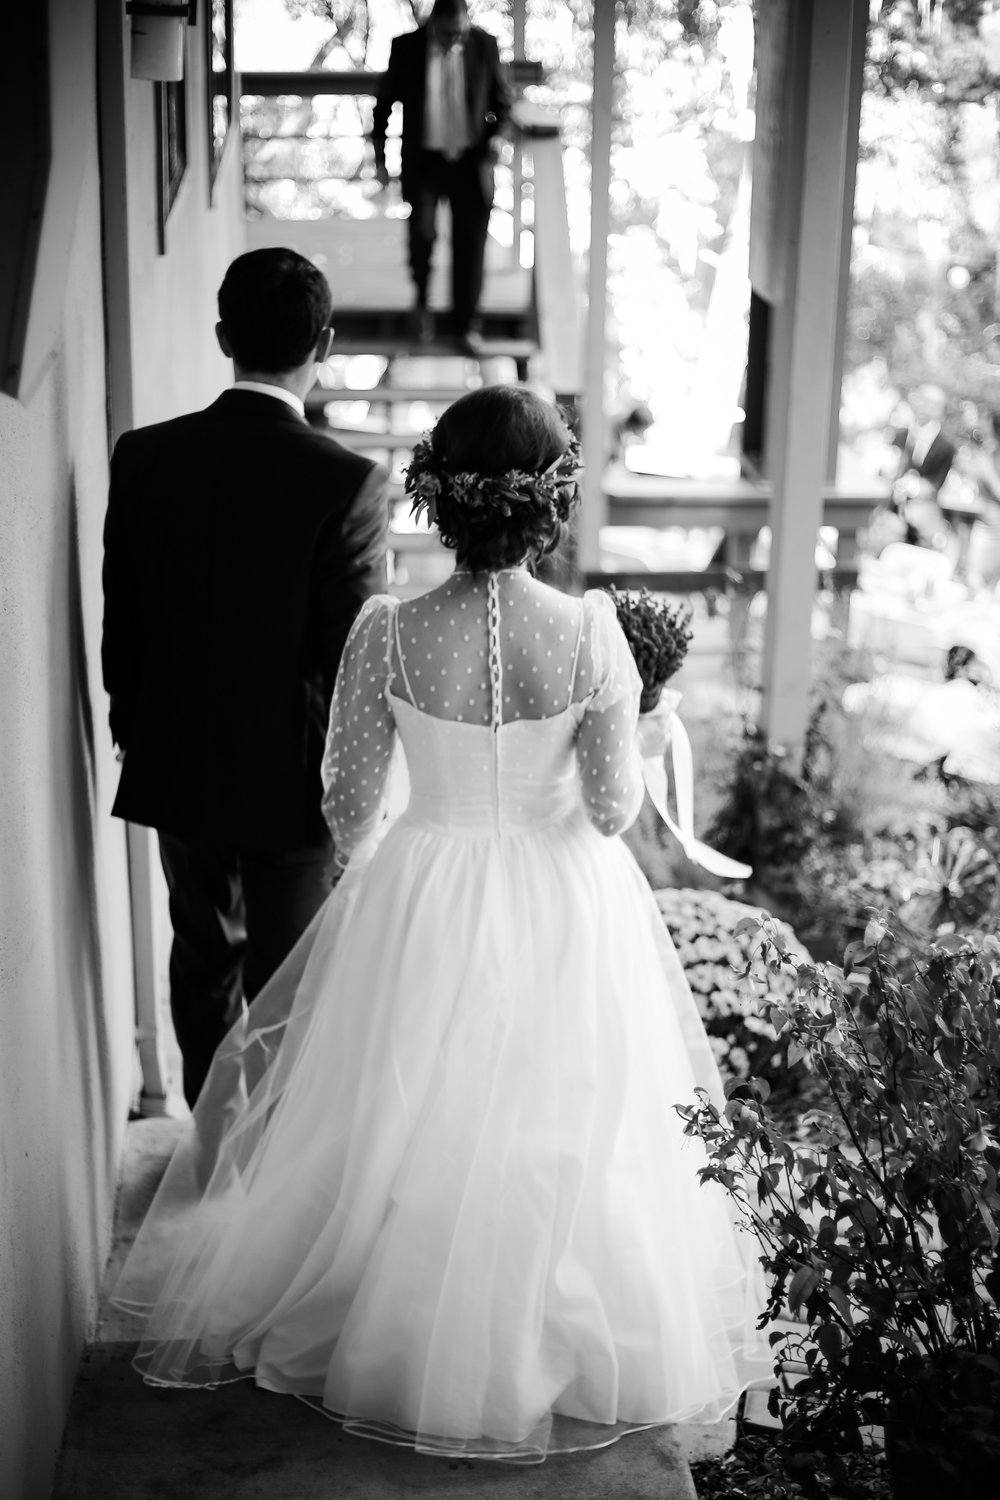 alexandra-rice-photography-monterey-wedding-bride-groom-reception-black-white-portrait.jpg